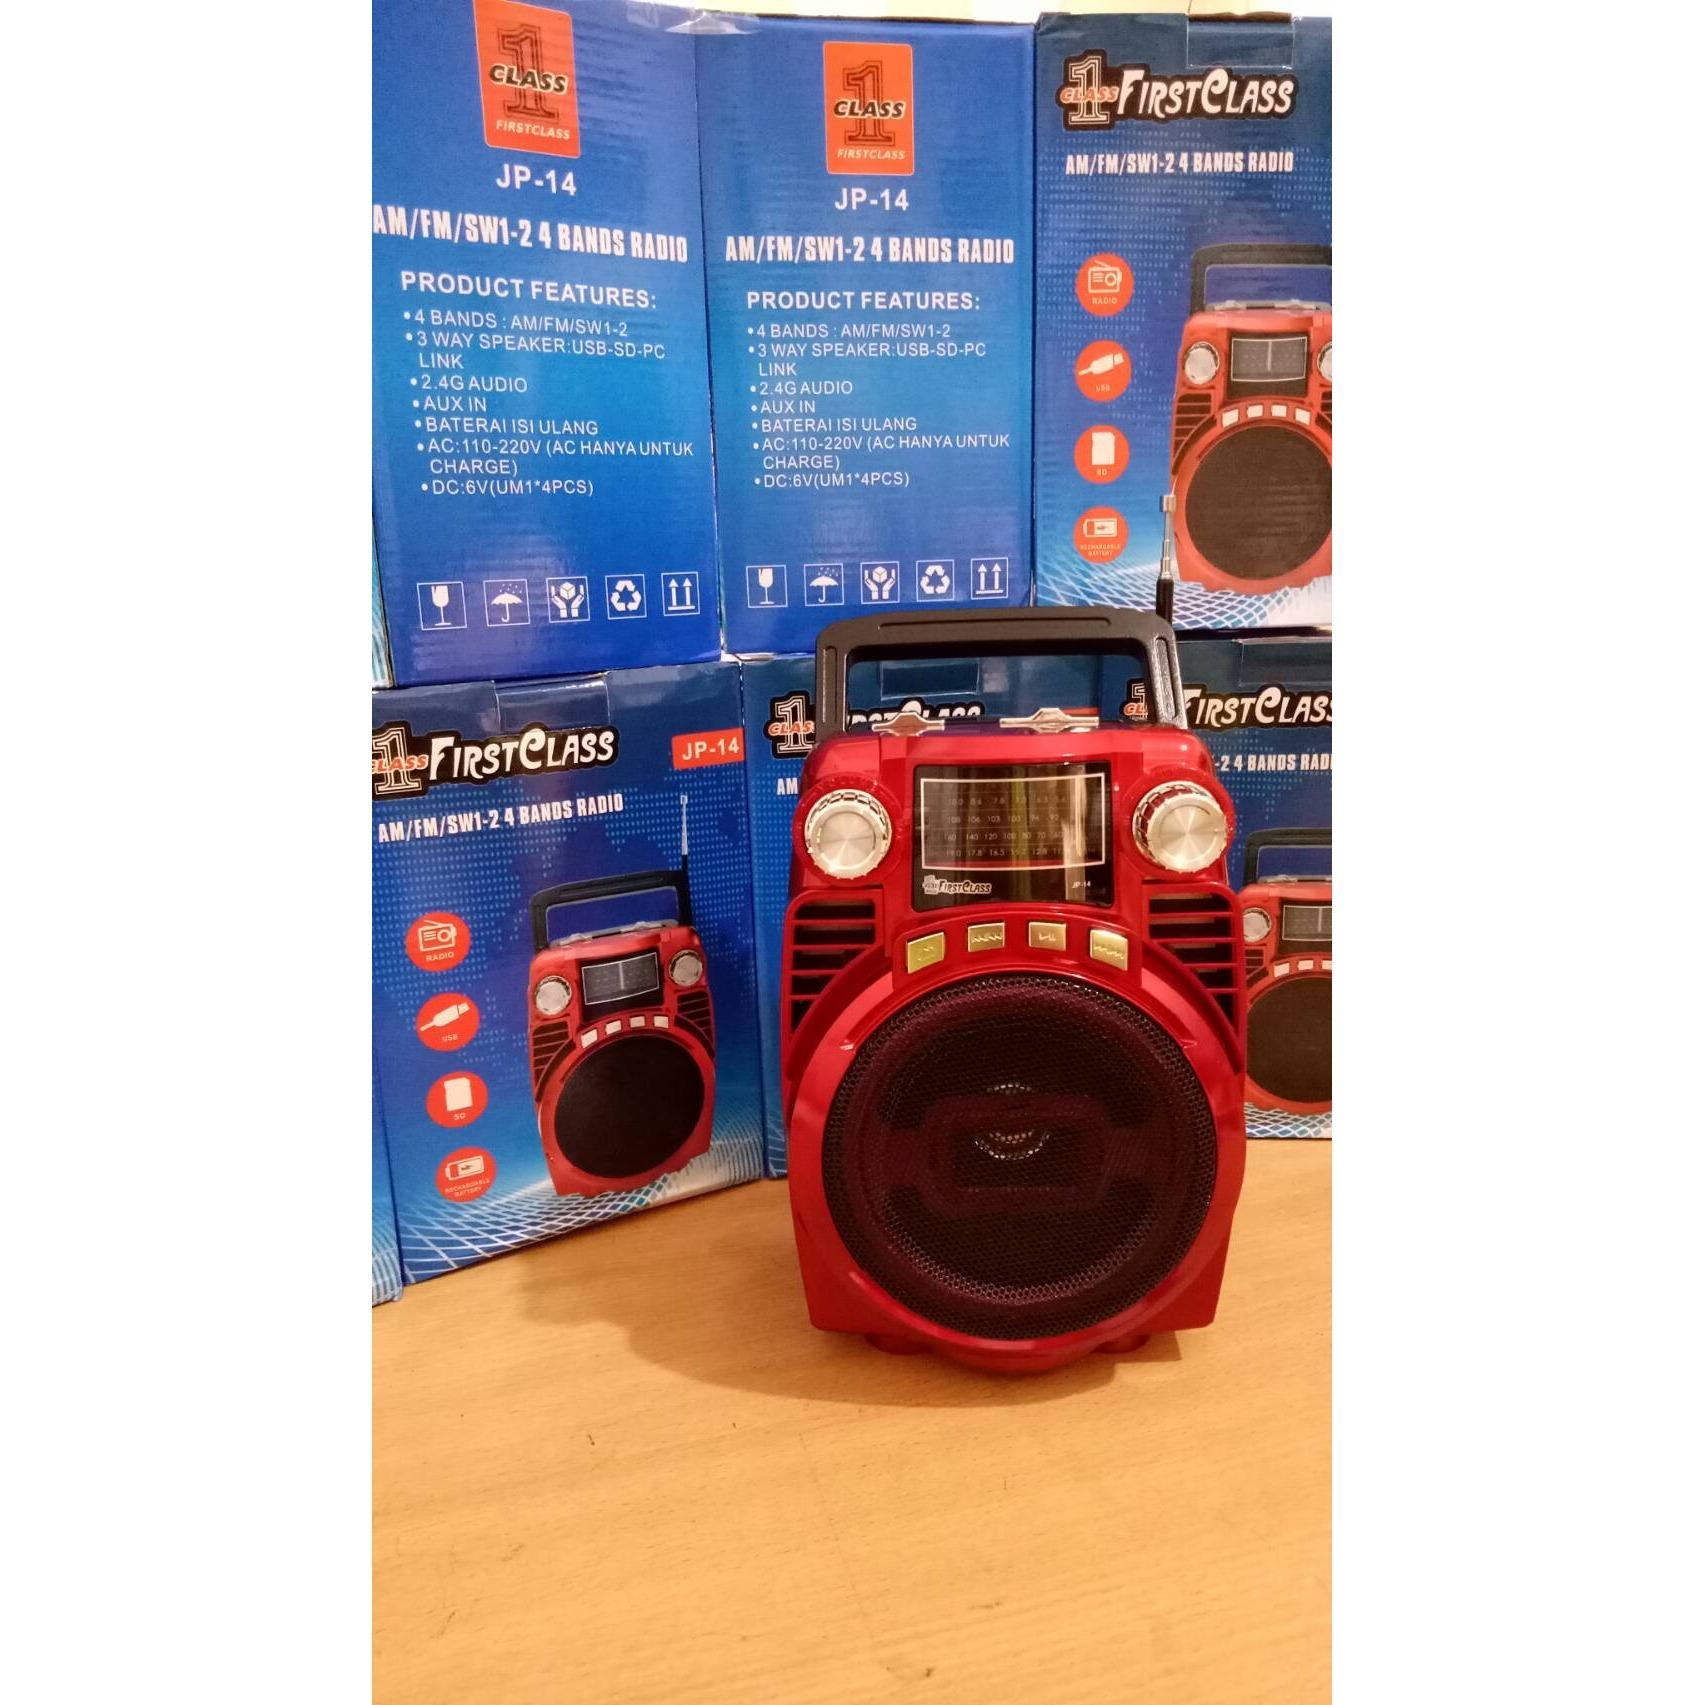 Babyandkids Radio Speaker Usb Portable Am Fm Murah